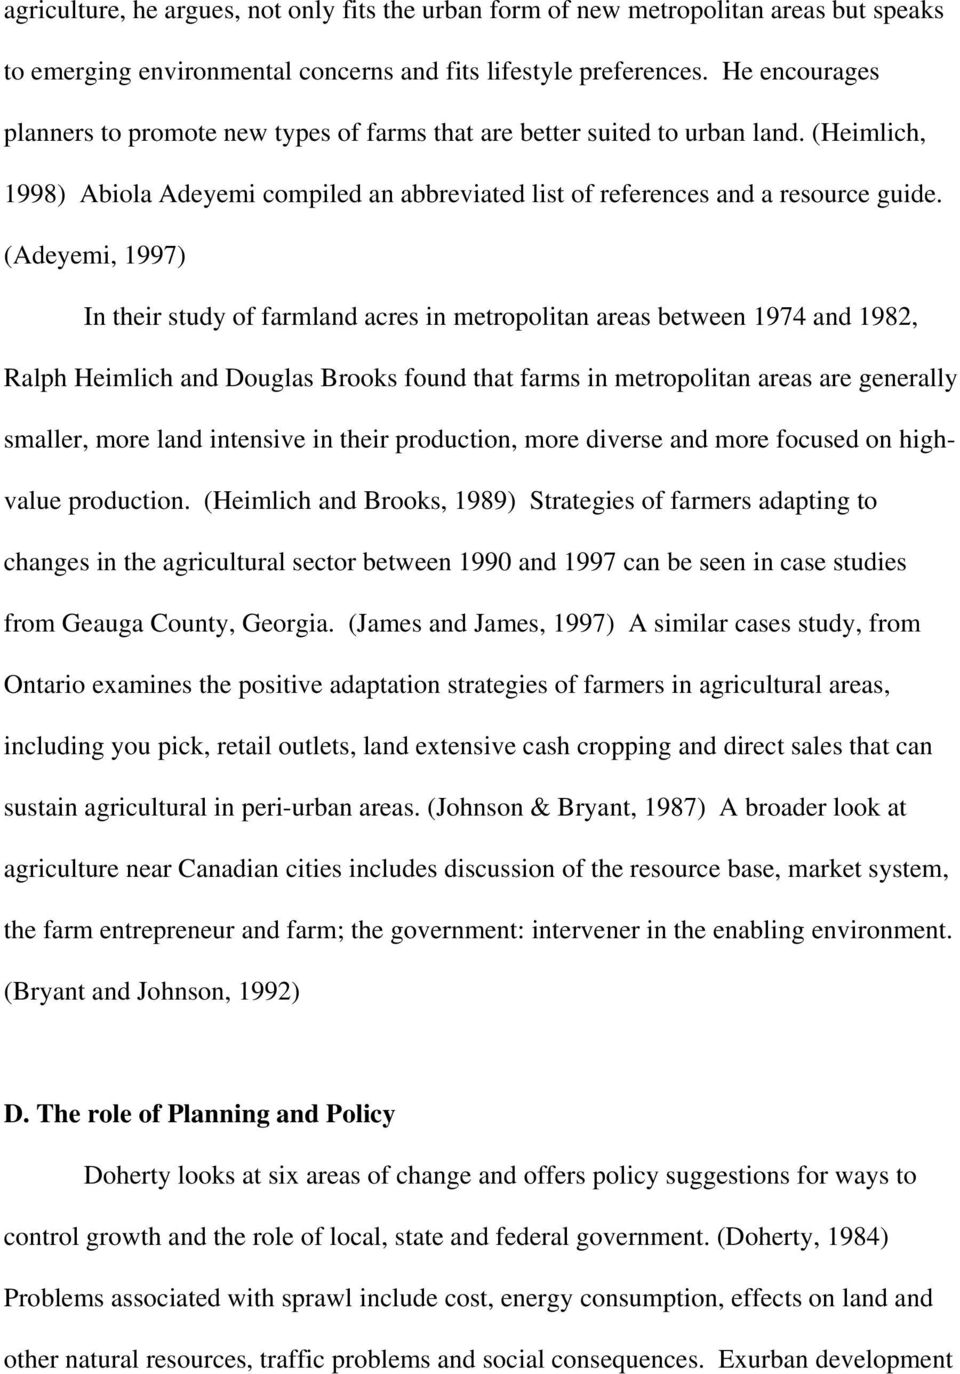 (Adeyemi, 1997) In their study of farmland acres in metropolitan areas between 1974 and 1982, Ralph Heimlich and Douglas Brooks found that farms in metropolitan areas are generally smaller, more land